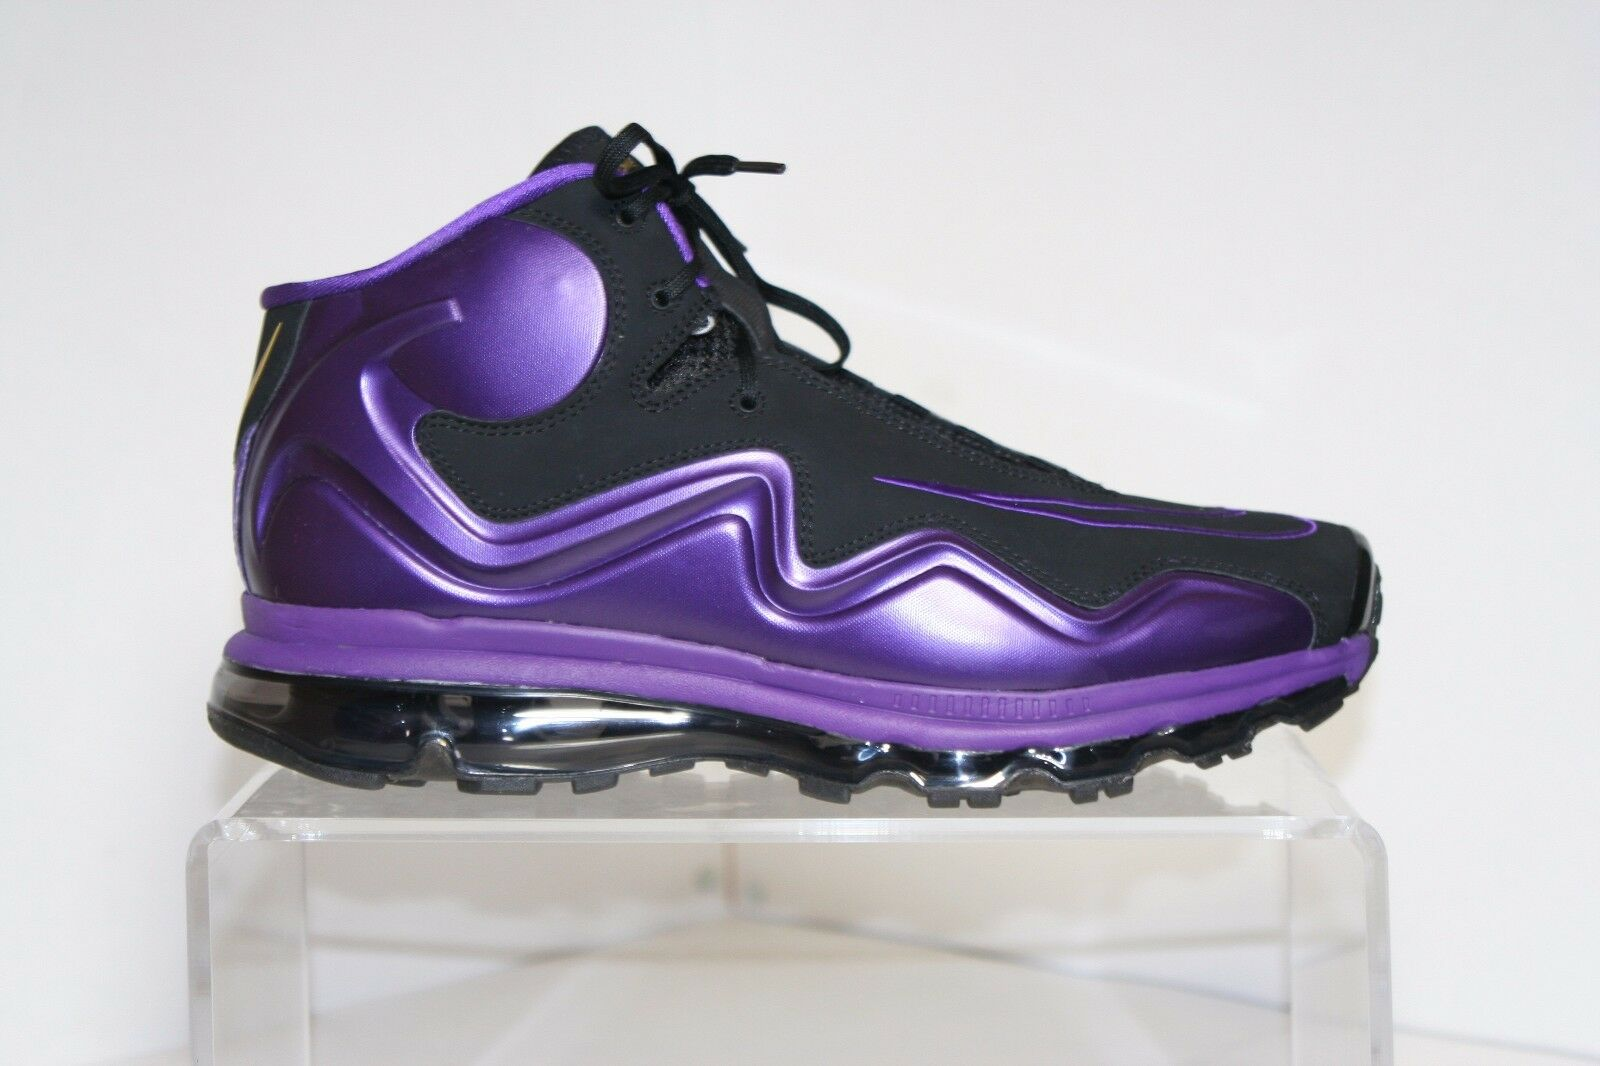 9f618d202f Nike Air Max Flyposite 2012 Sneaker Black Purple Men 12 Football Training  Club nwirln2045-Athletic Shoes